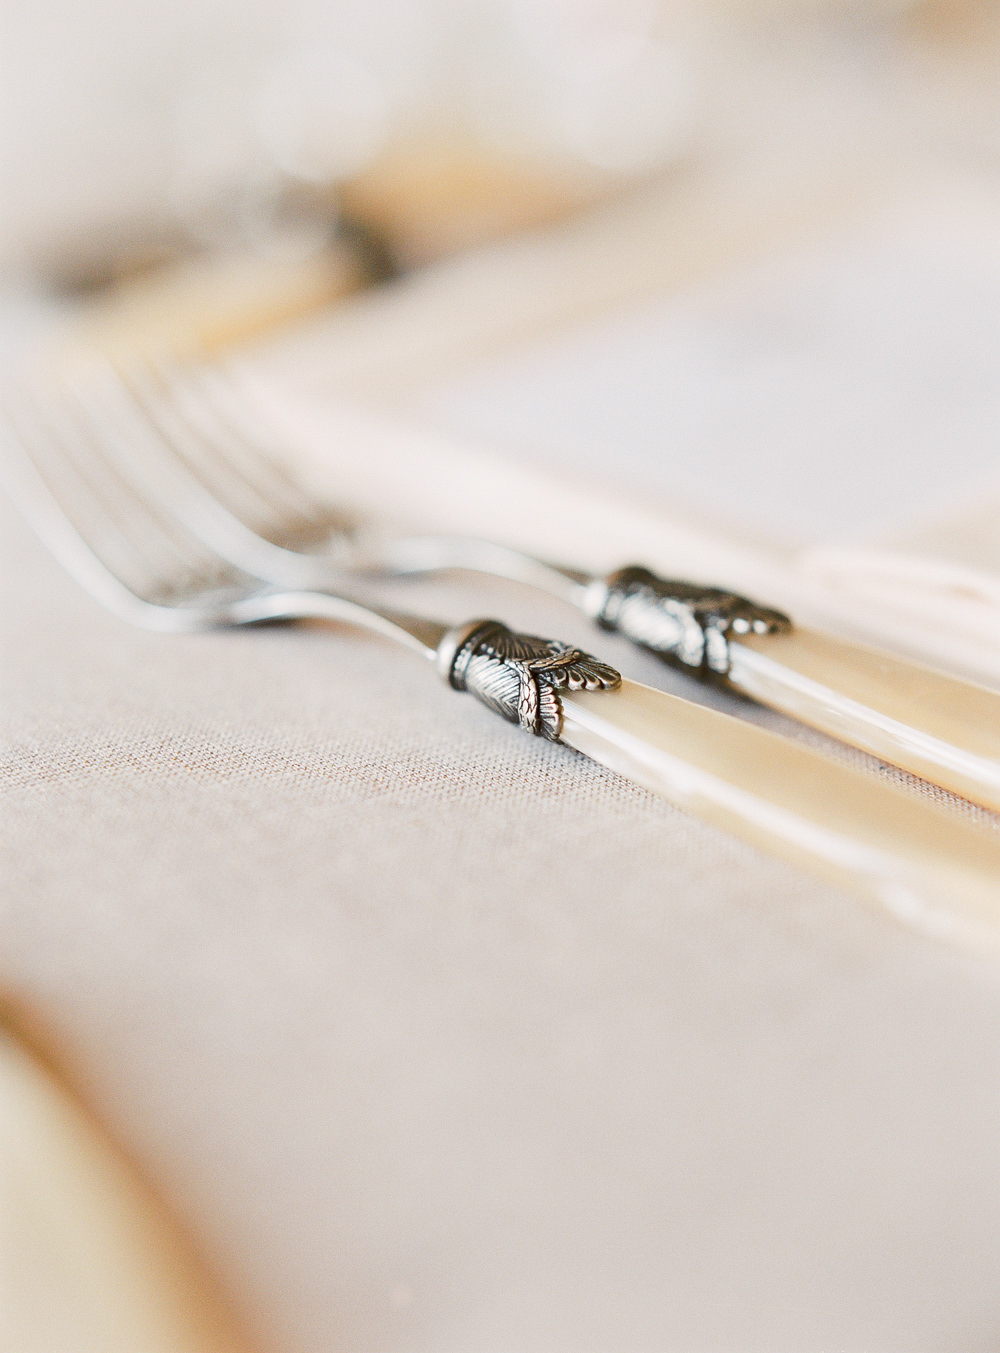 Ivory and antique silver cutlery